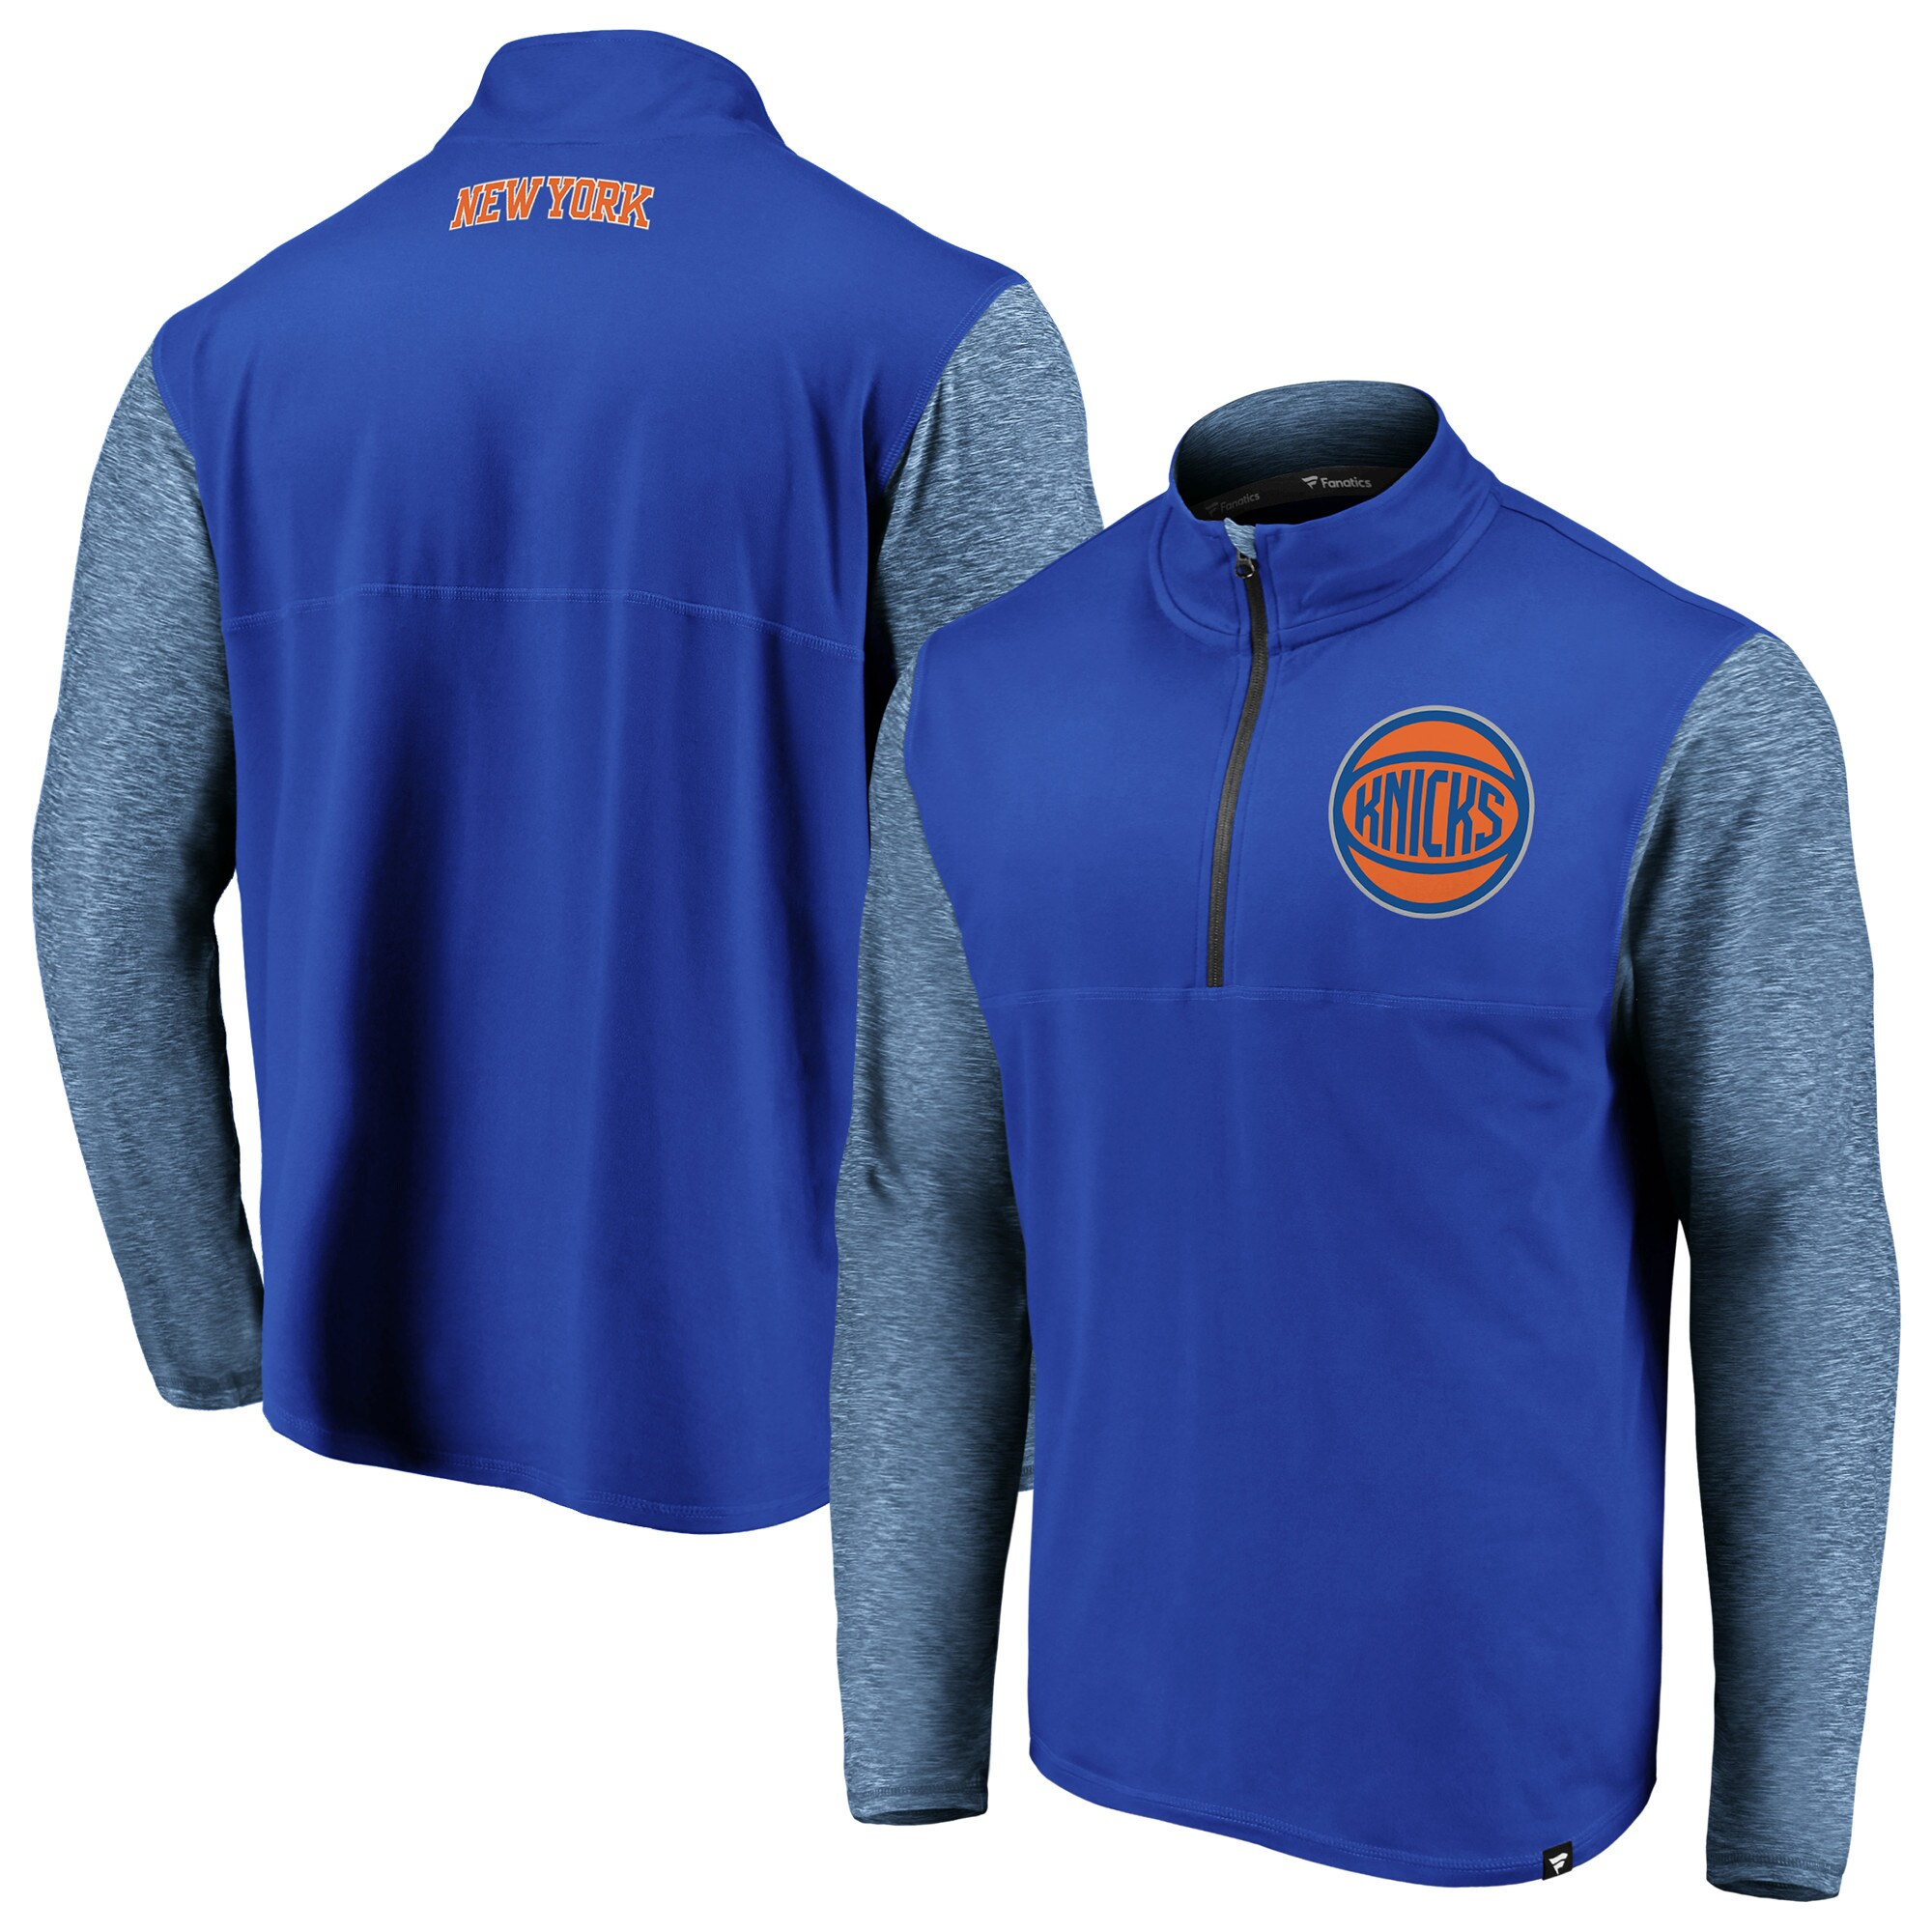 New York Knicks Fanatics Branded Made to Move Static Performance Quarter-Zip Pullover Jacket - Blue/Heathered Blue